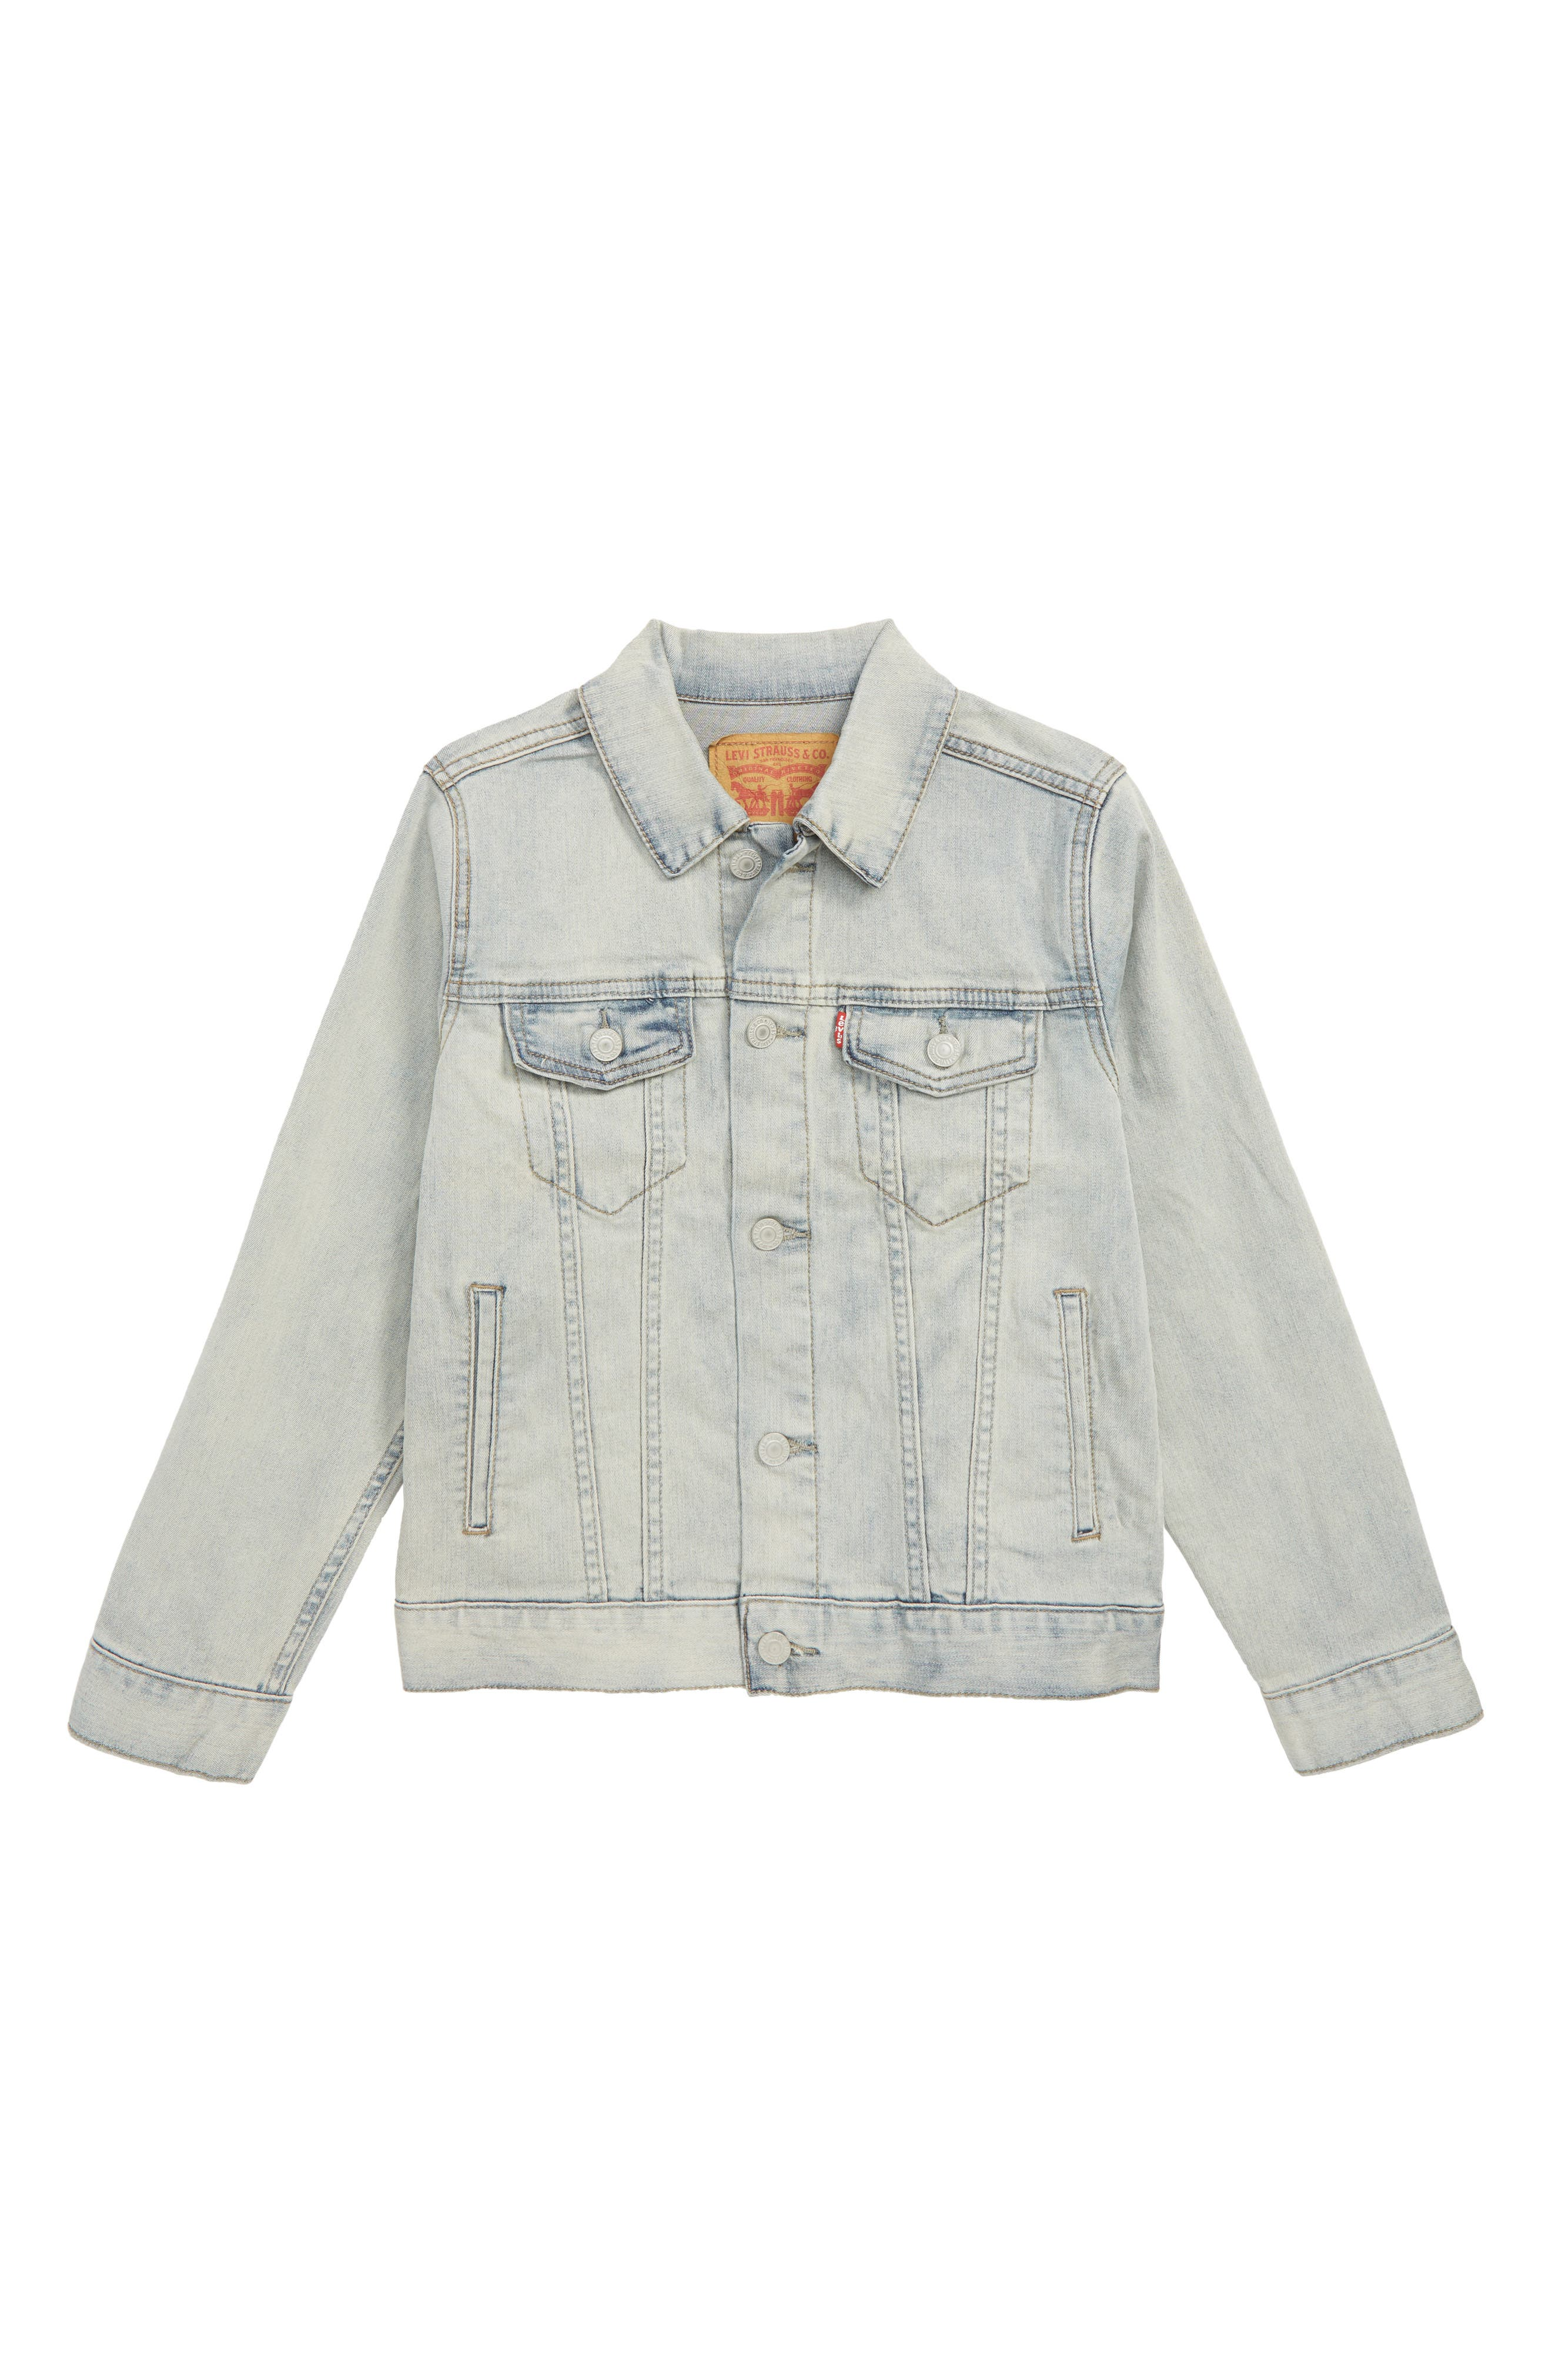 Trucker Denim Jacket,                             Main thumbnail 1, color,                             407